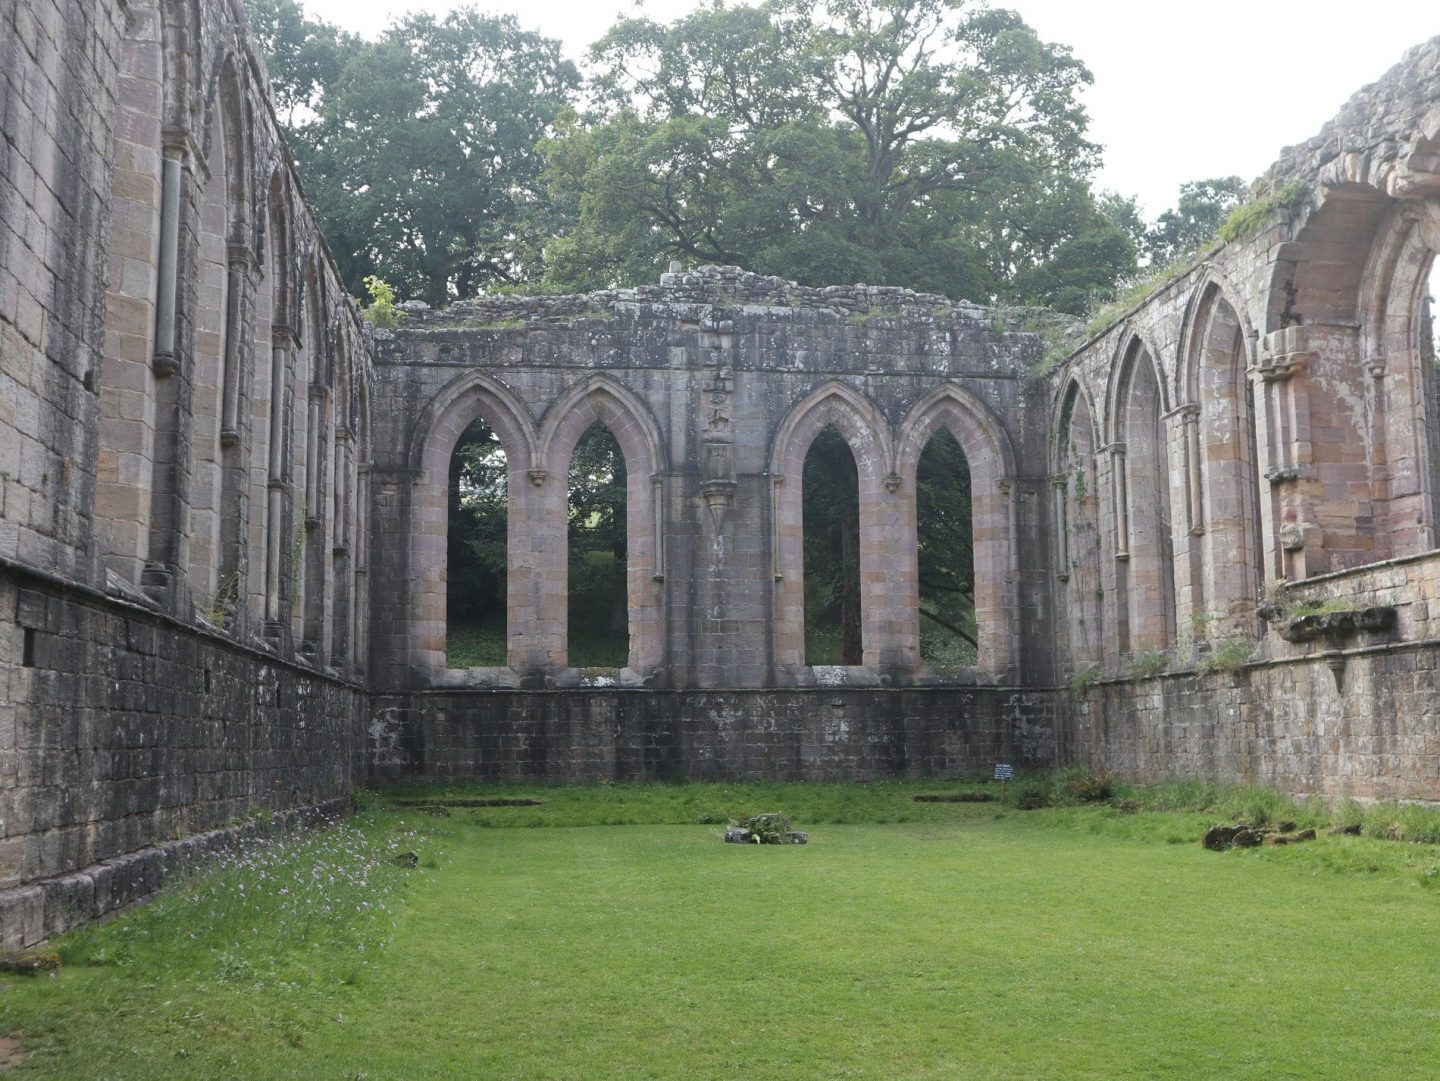 the refectory - a great place to see when visiting fountains abbey